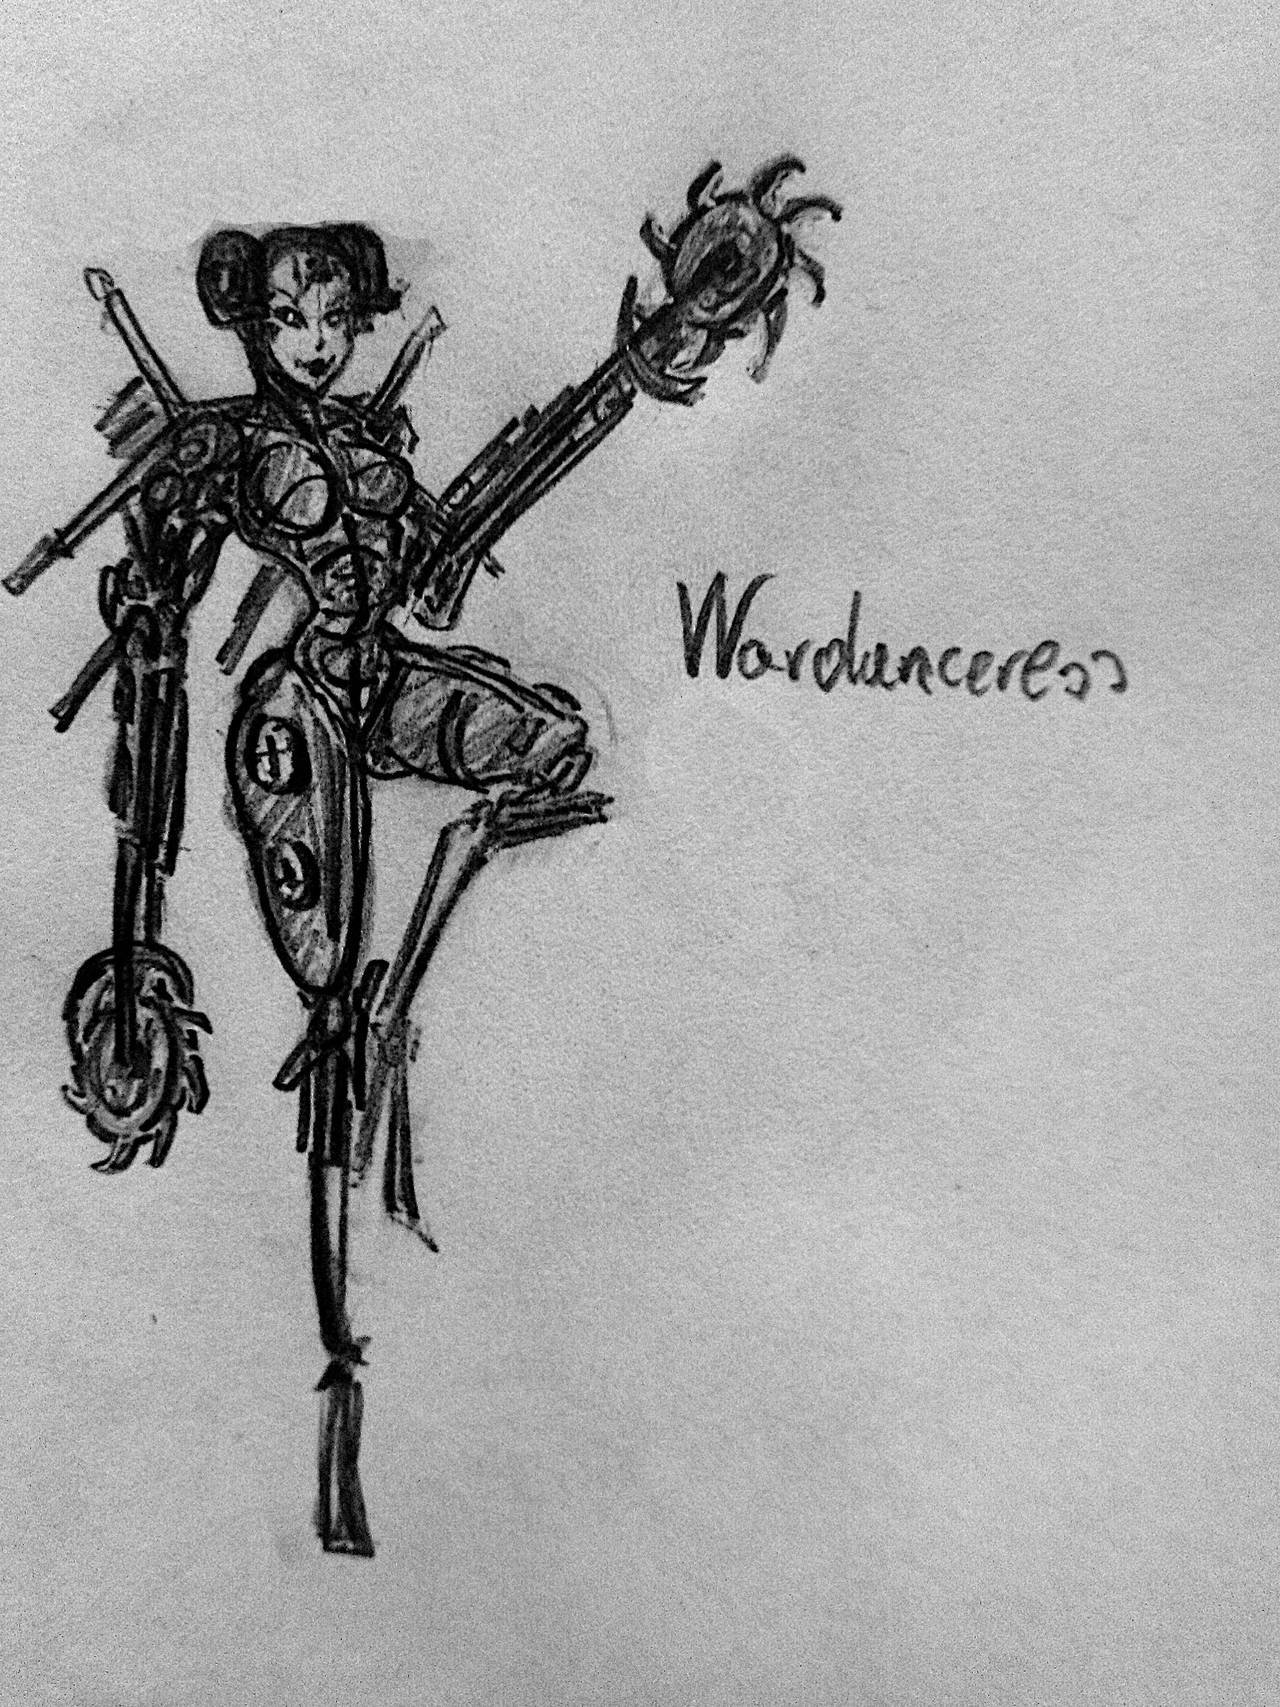 wardanceress_by_huginthecrowda_dcw7k0t-f